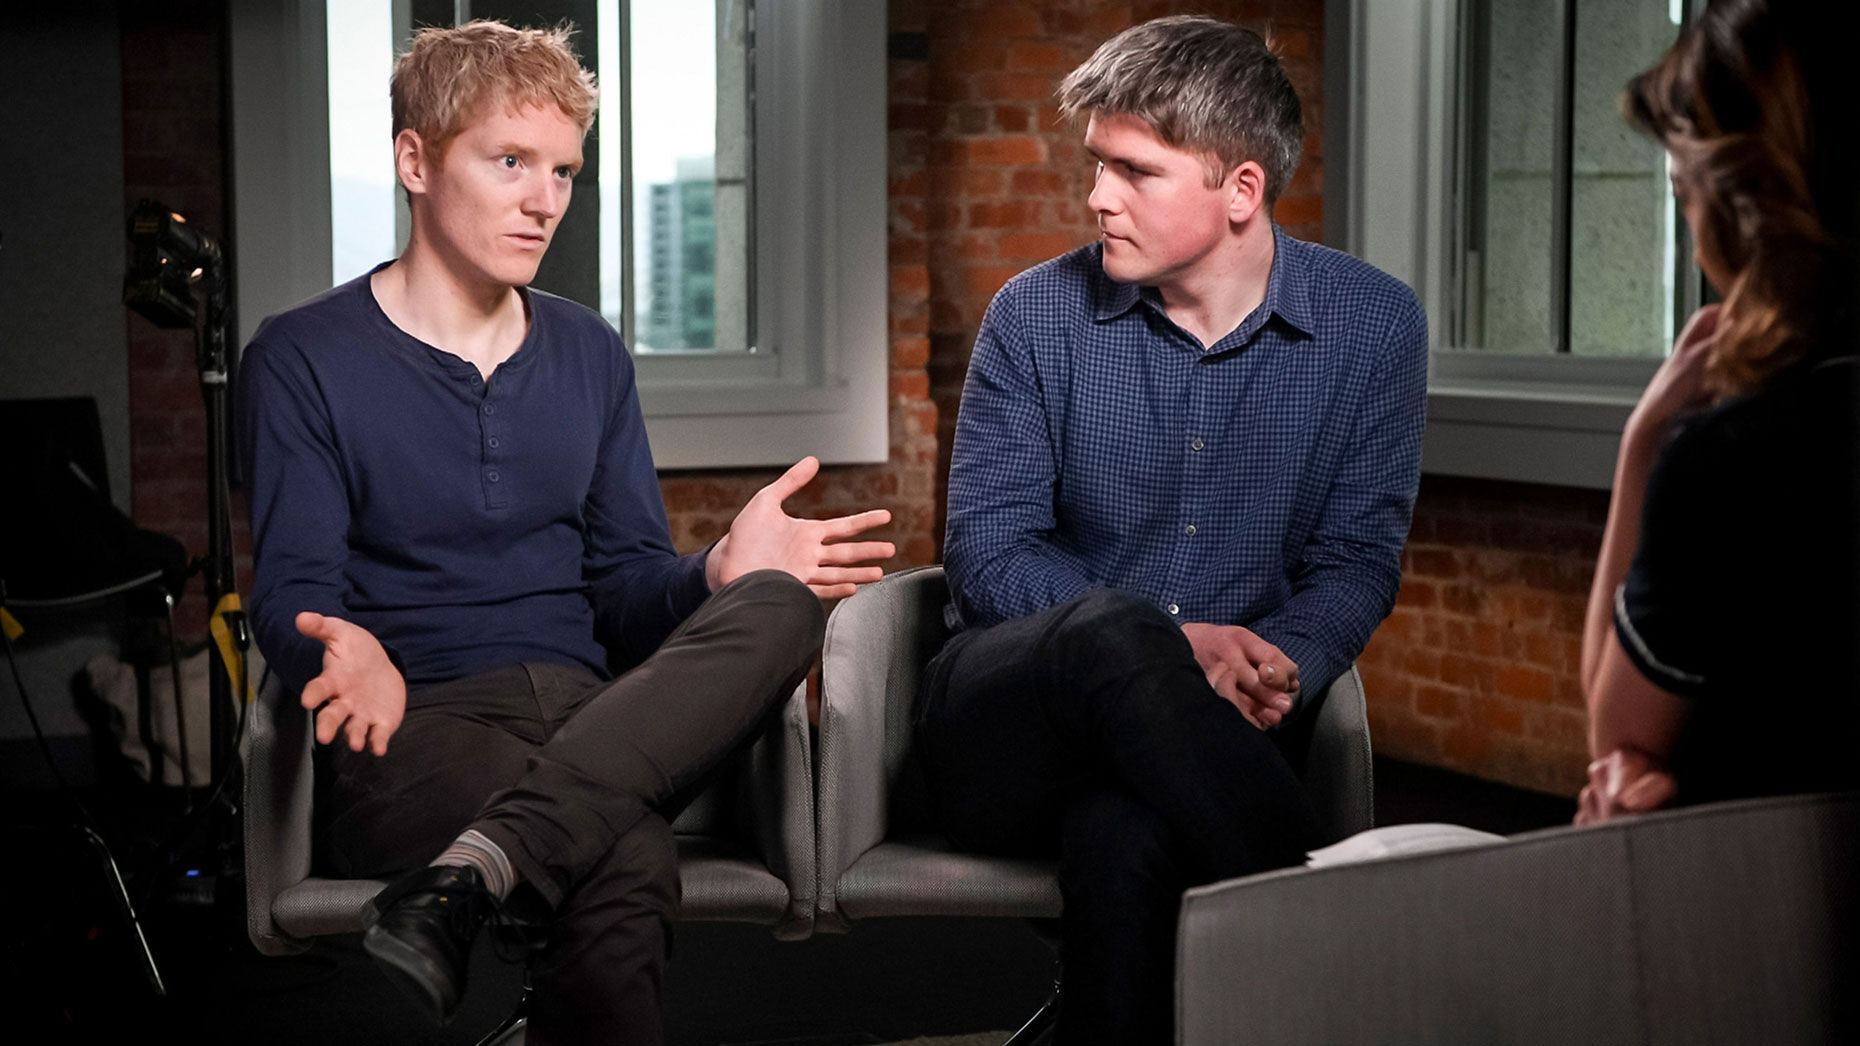 Patrick Collison, CEO and co-founder of Stripe, left, and John Collison, president and co-founder of Stripe, in 2018. Photo by Bloomberg.